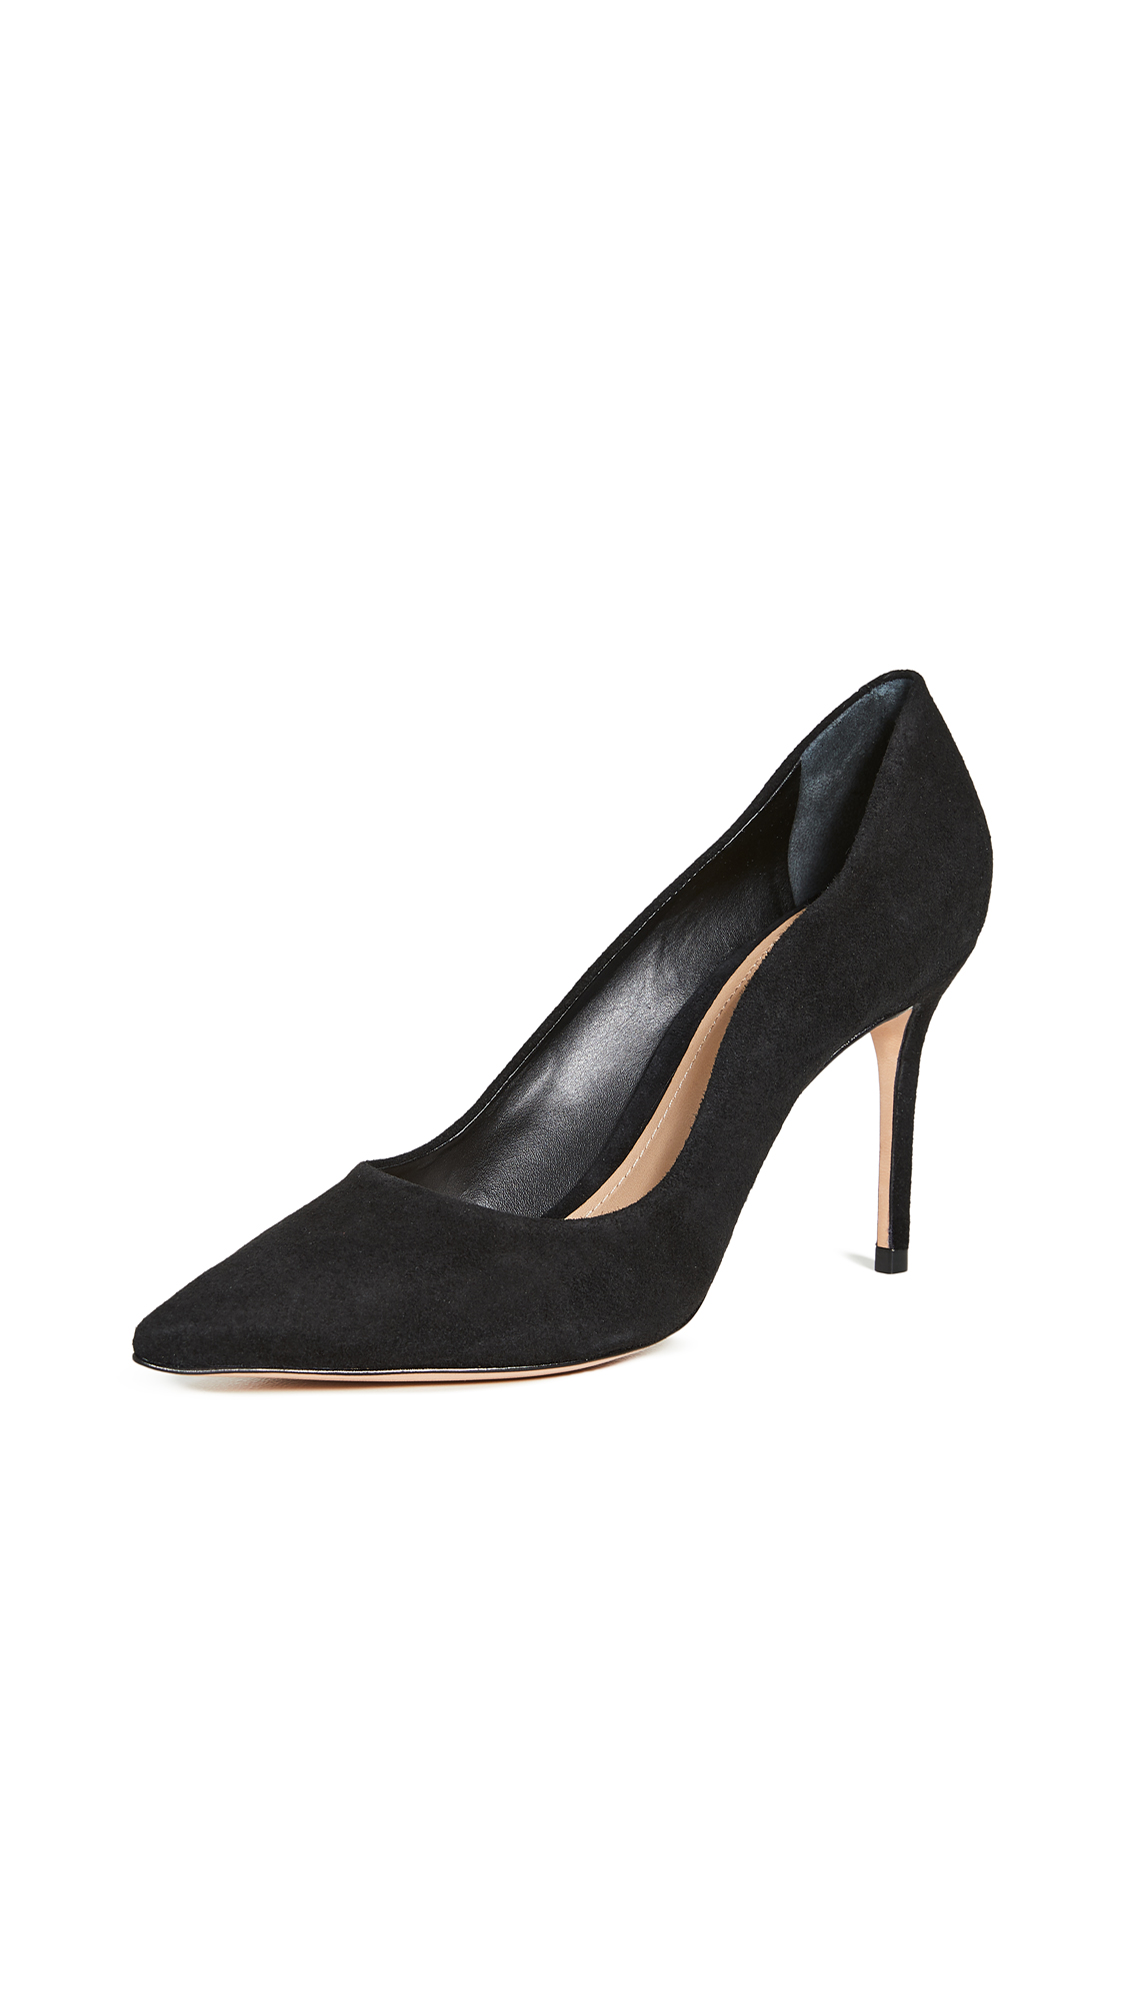 Schutz Analira Point Toe Pumps - 25% Off Sale